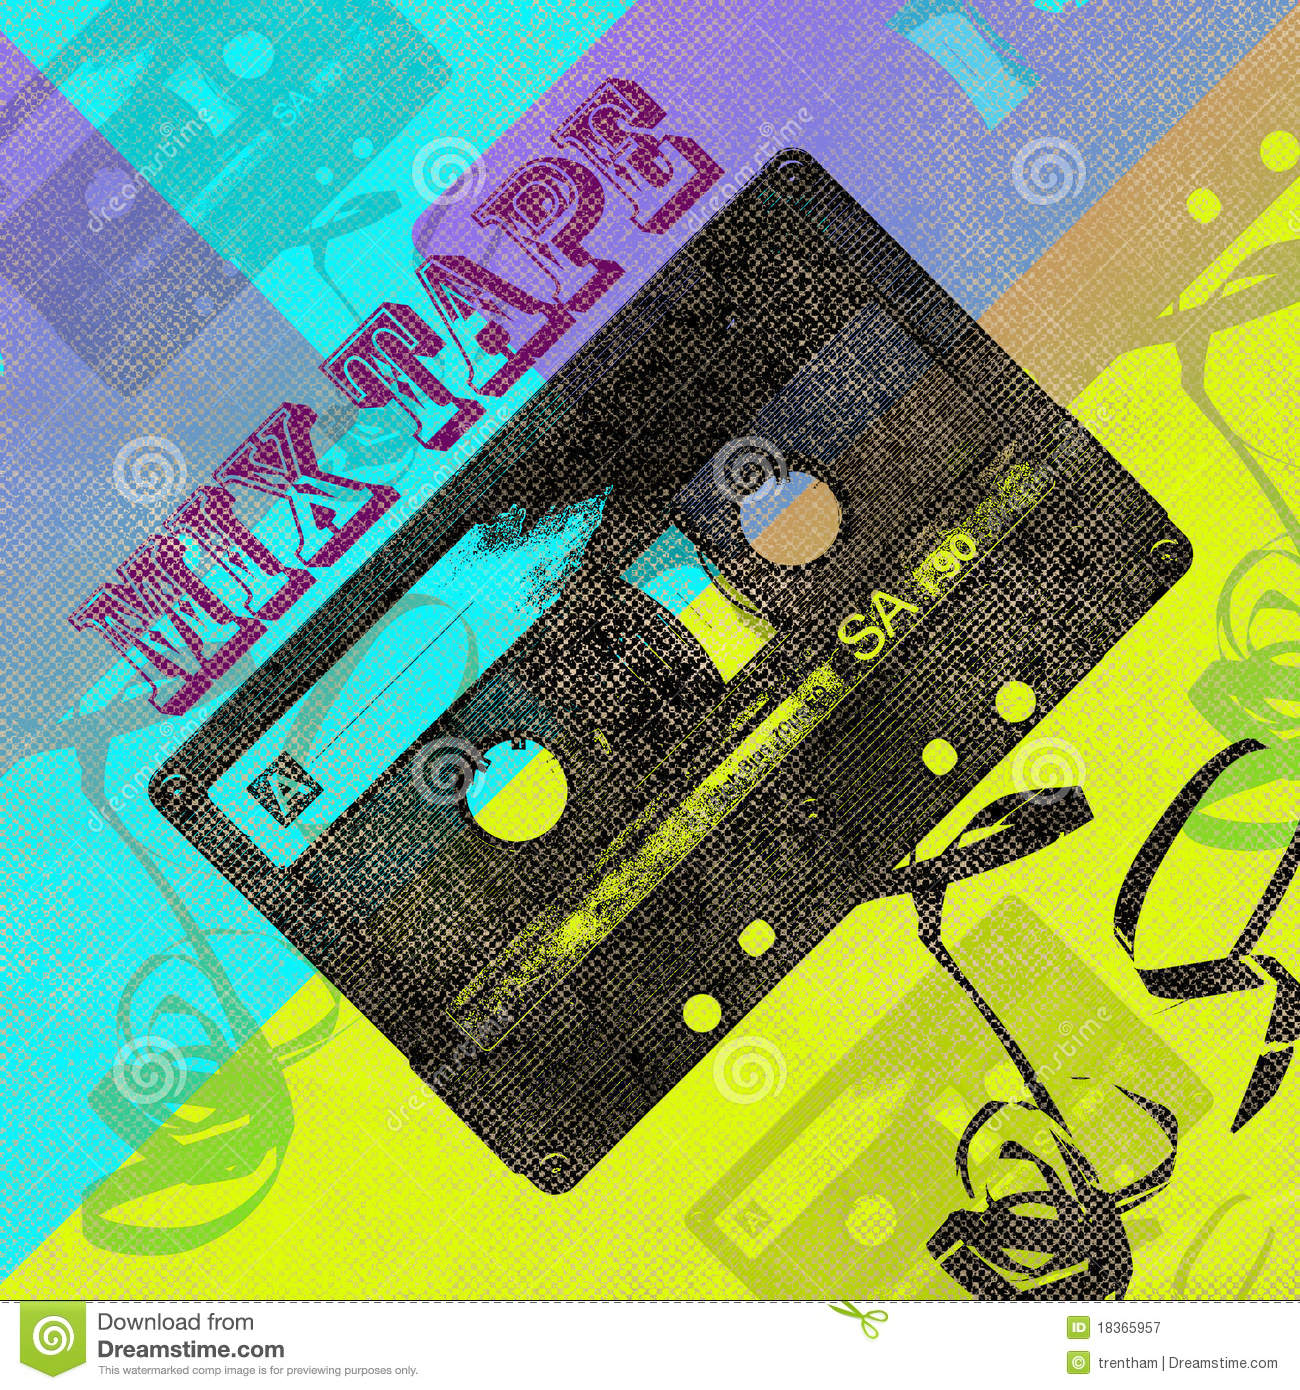 Mix Tape Cd Cover Royalty Free Stock Photography - Image: 18365957